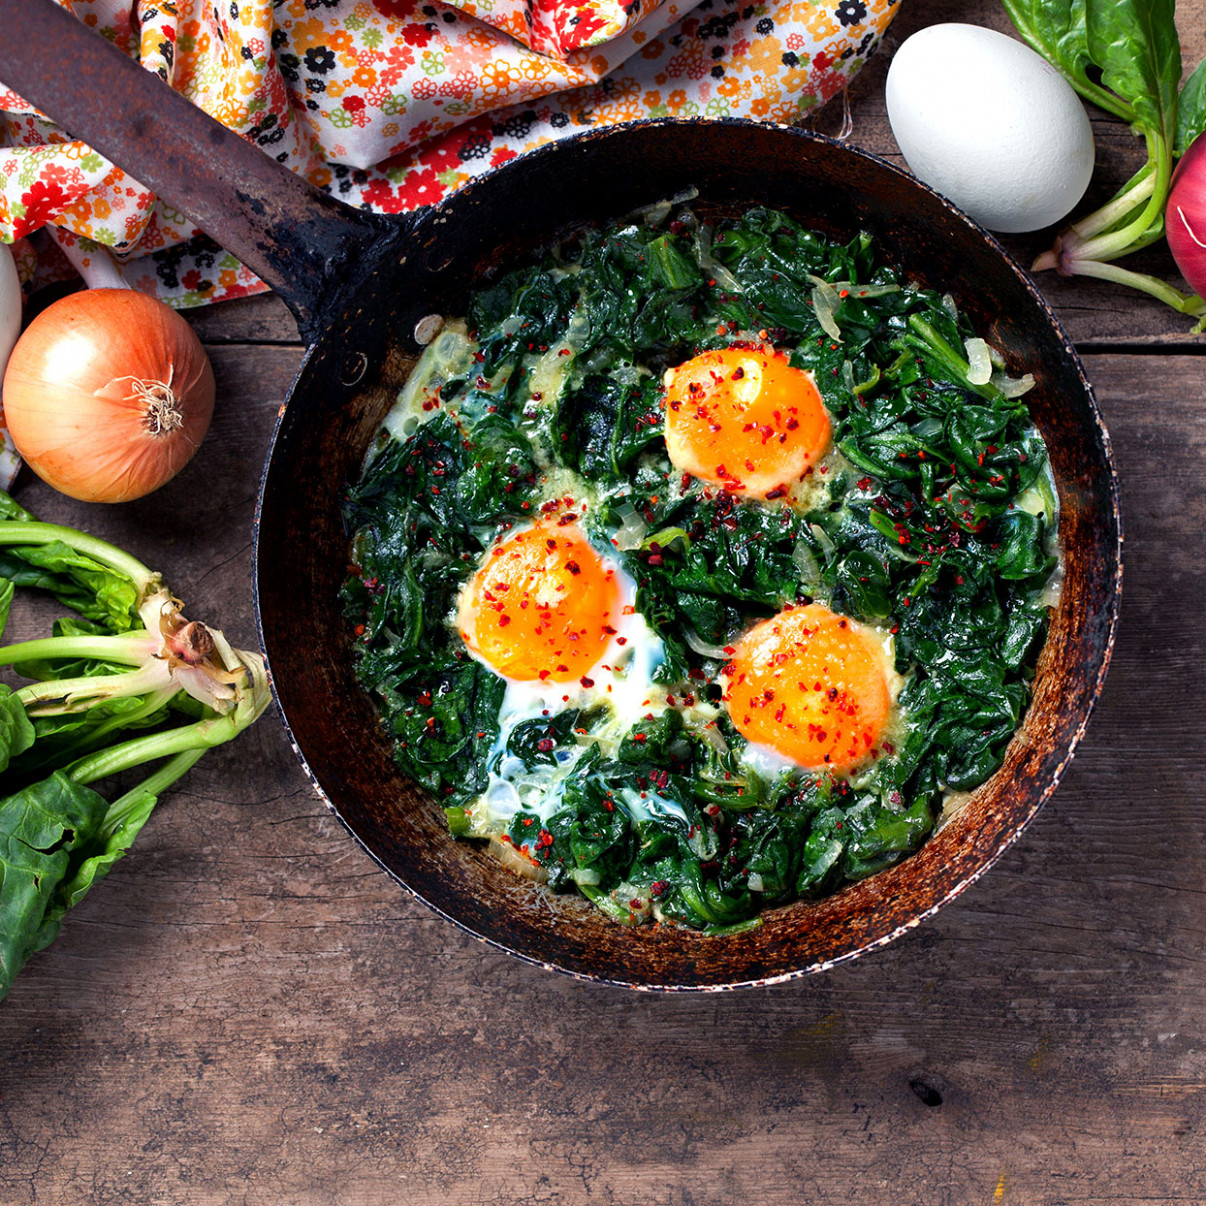 Healthy Breakfasts for Weight Loss | Shape - healthy recipes to lose weight